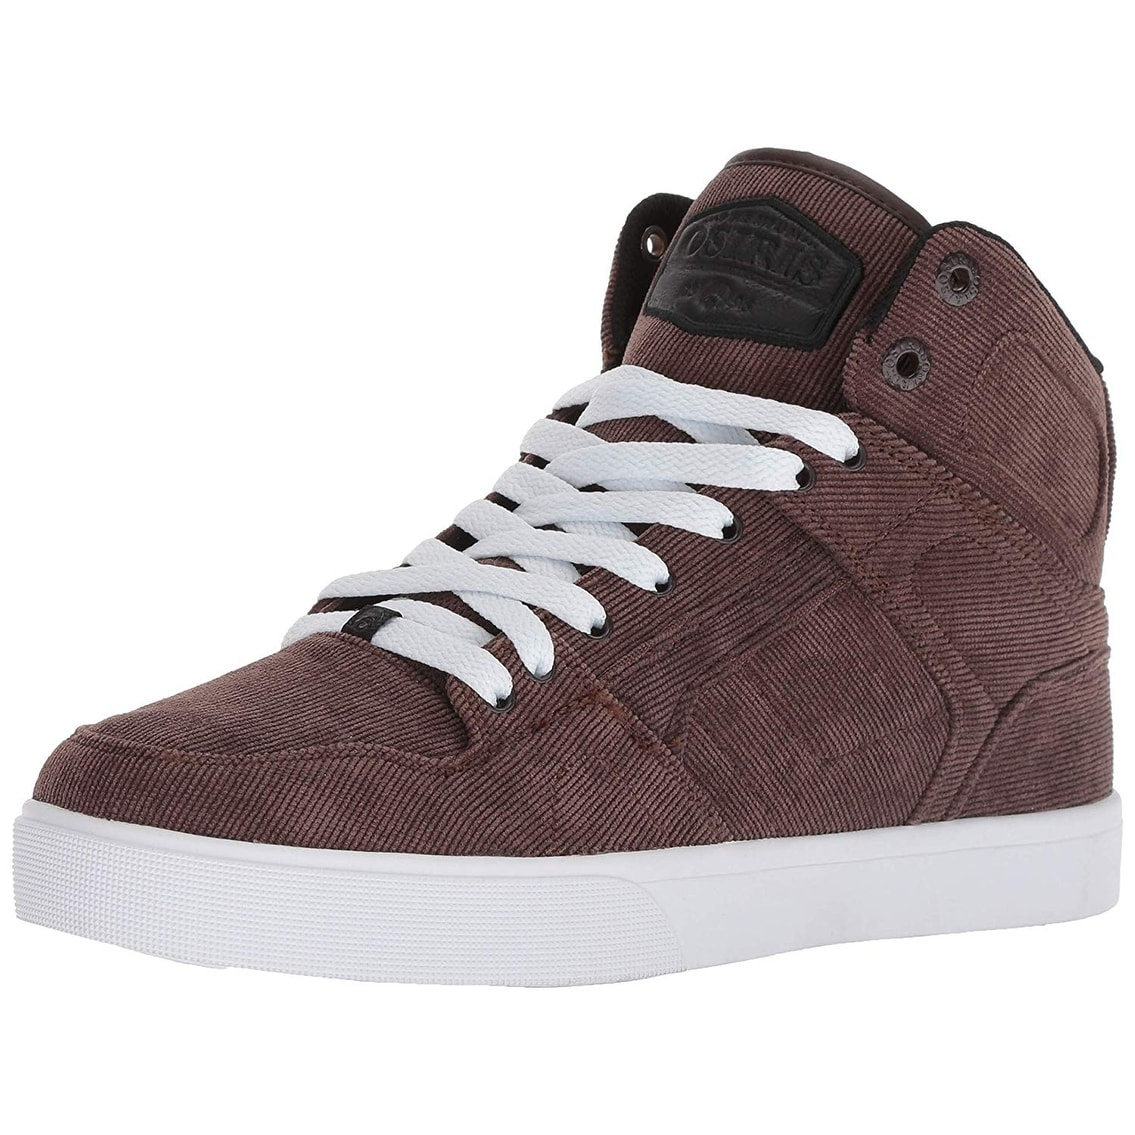 fbebf4af6f9 Osiris Shoes | Shop our Best Clothing & Shoes Deals Online at Overstock